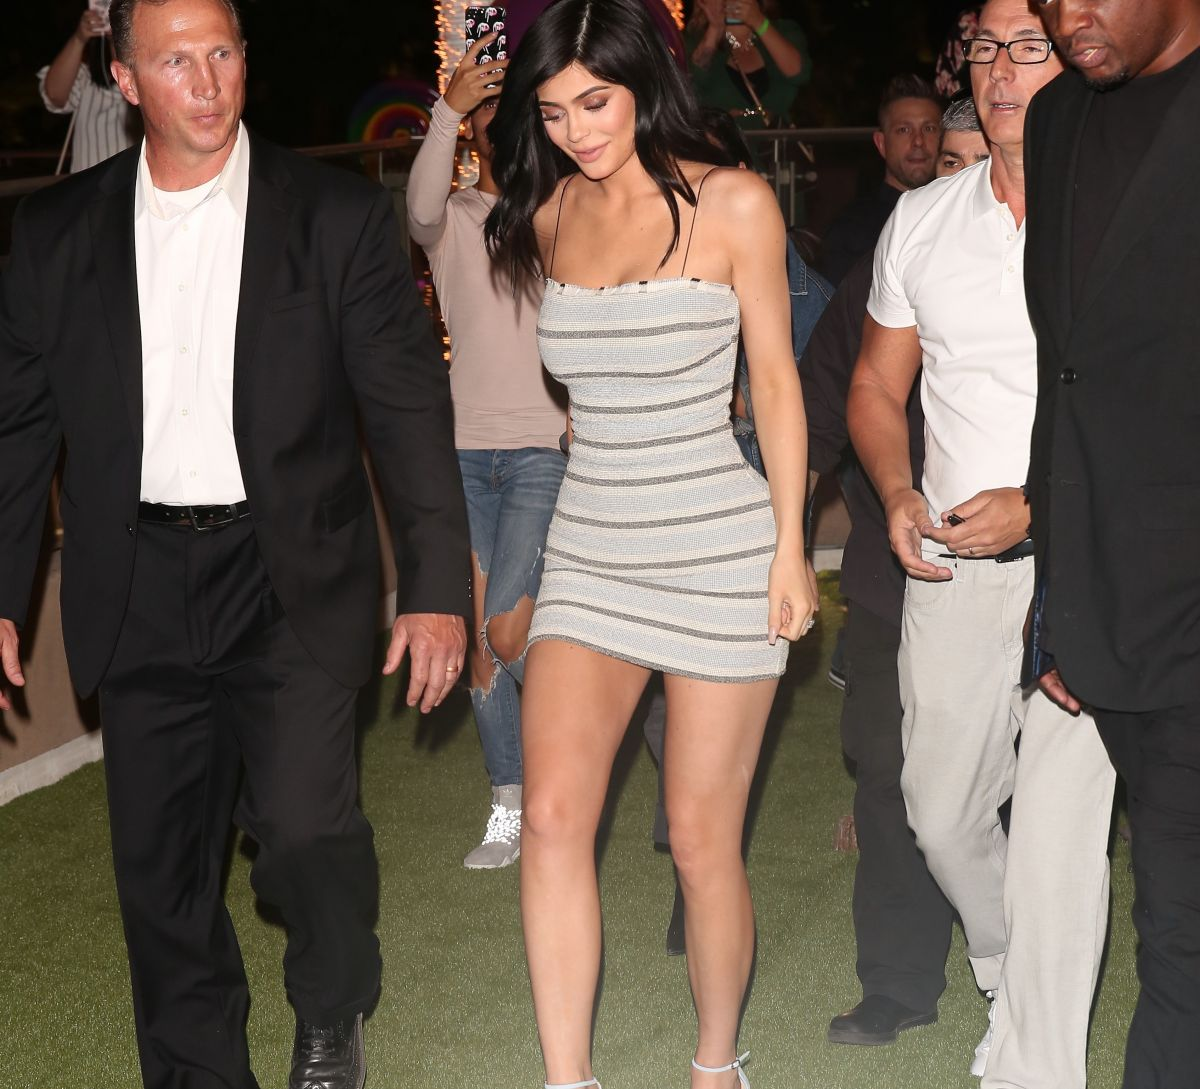 KYLIE JENNER Surrounded by Security After PETA Protests in Las Vegas 04/22/2017